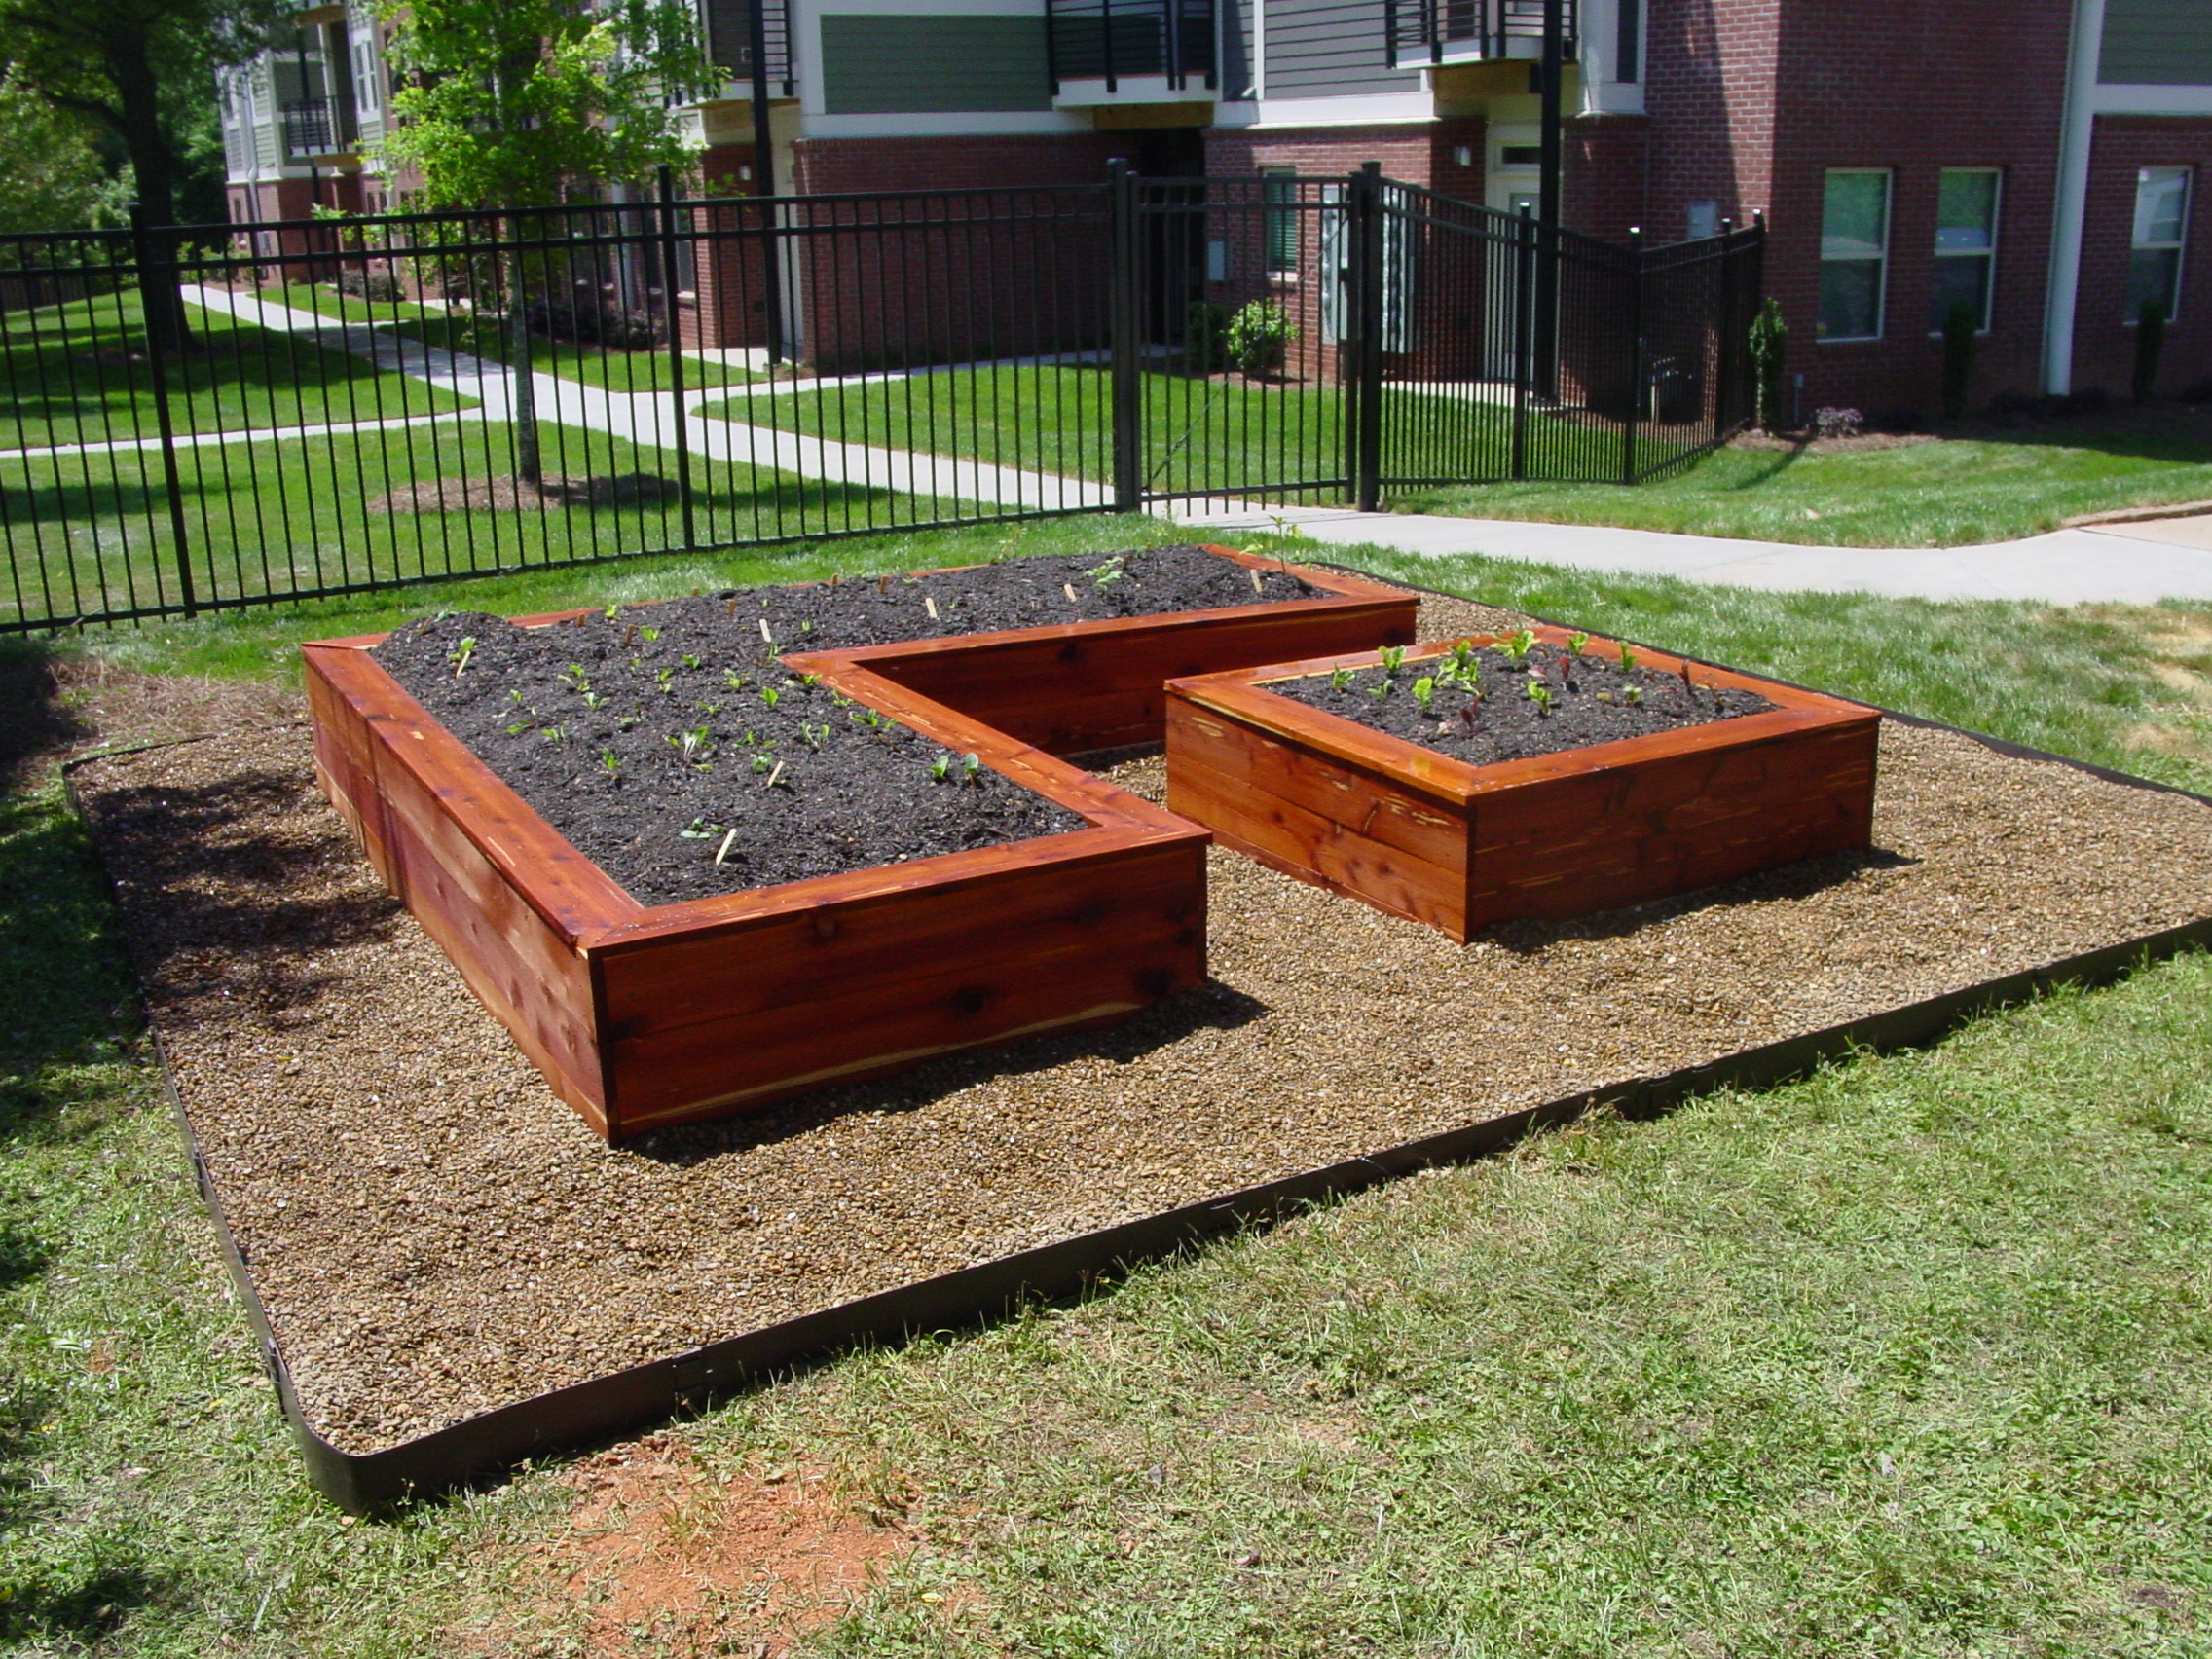 Ideas For Raised Garden Beds raised garden bed design the vegetable garden fence ideas Kitchen Garden Raised Beds